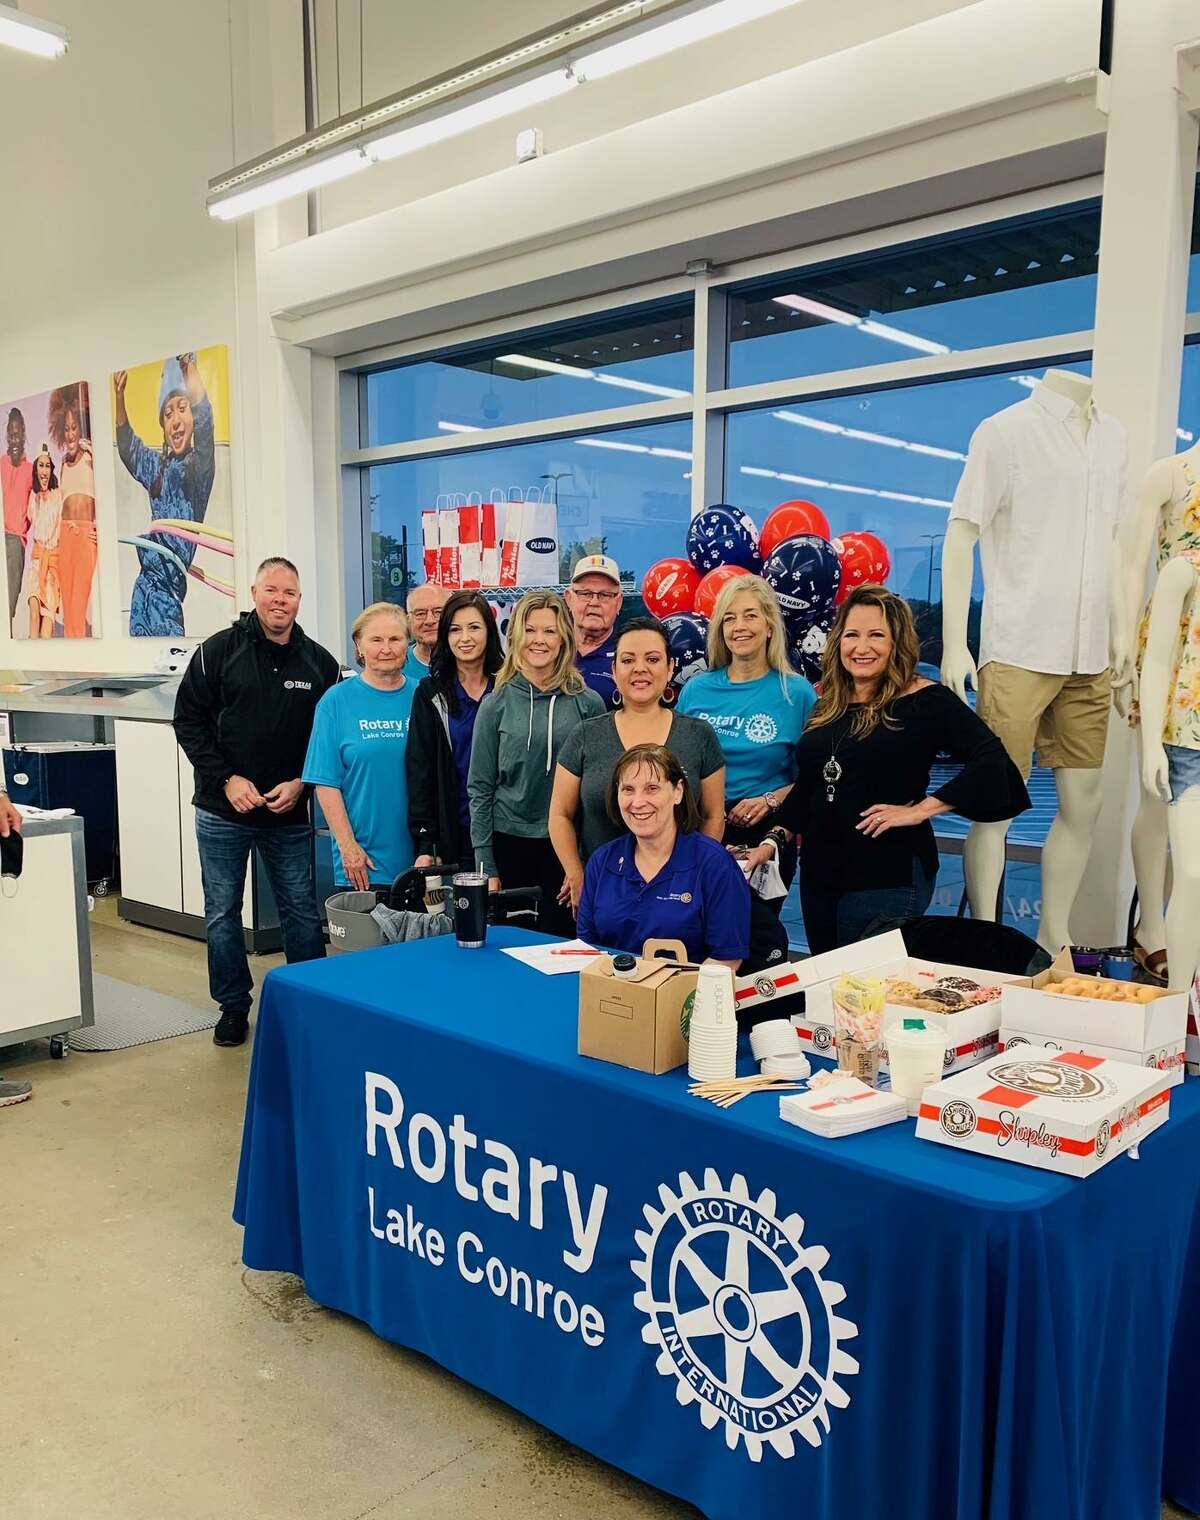 Members of the Rotary Club of Lake Conroe participated in the